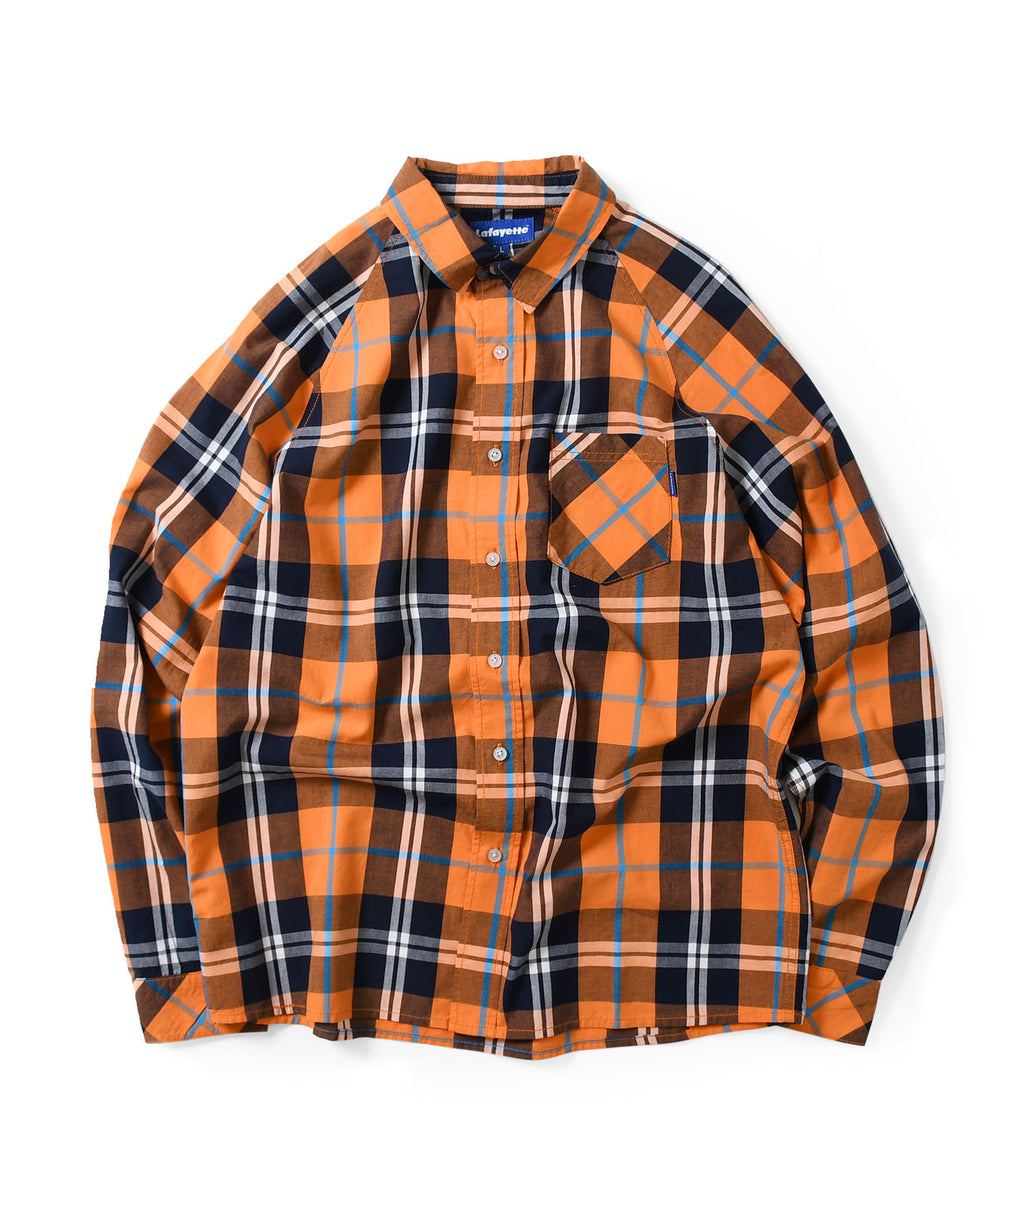 Lafayette RAGLAN PLAID L/S SHIRT LS200203 ORANGE